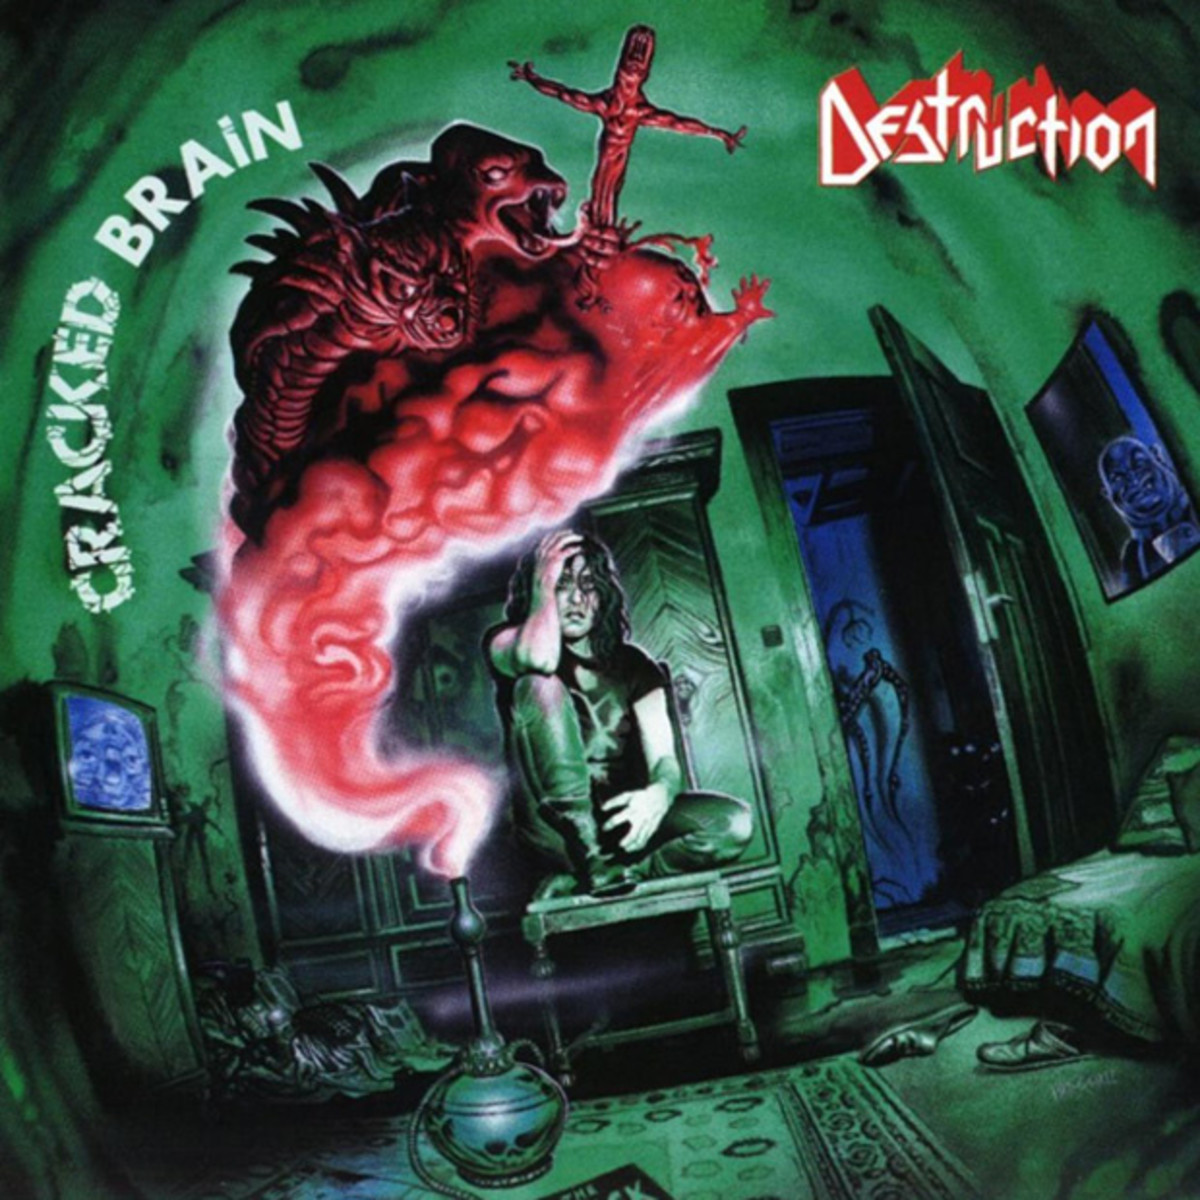 review-of-the-album-cracked-brain-by-german-thrash-metal-band-destruction